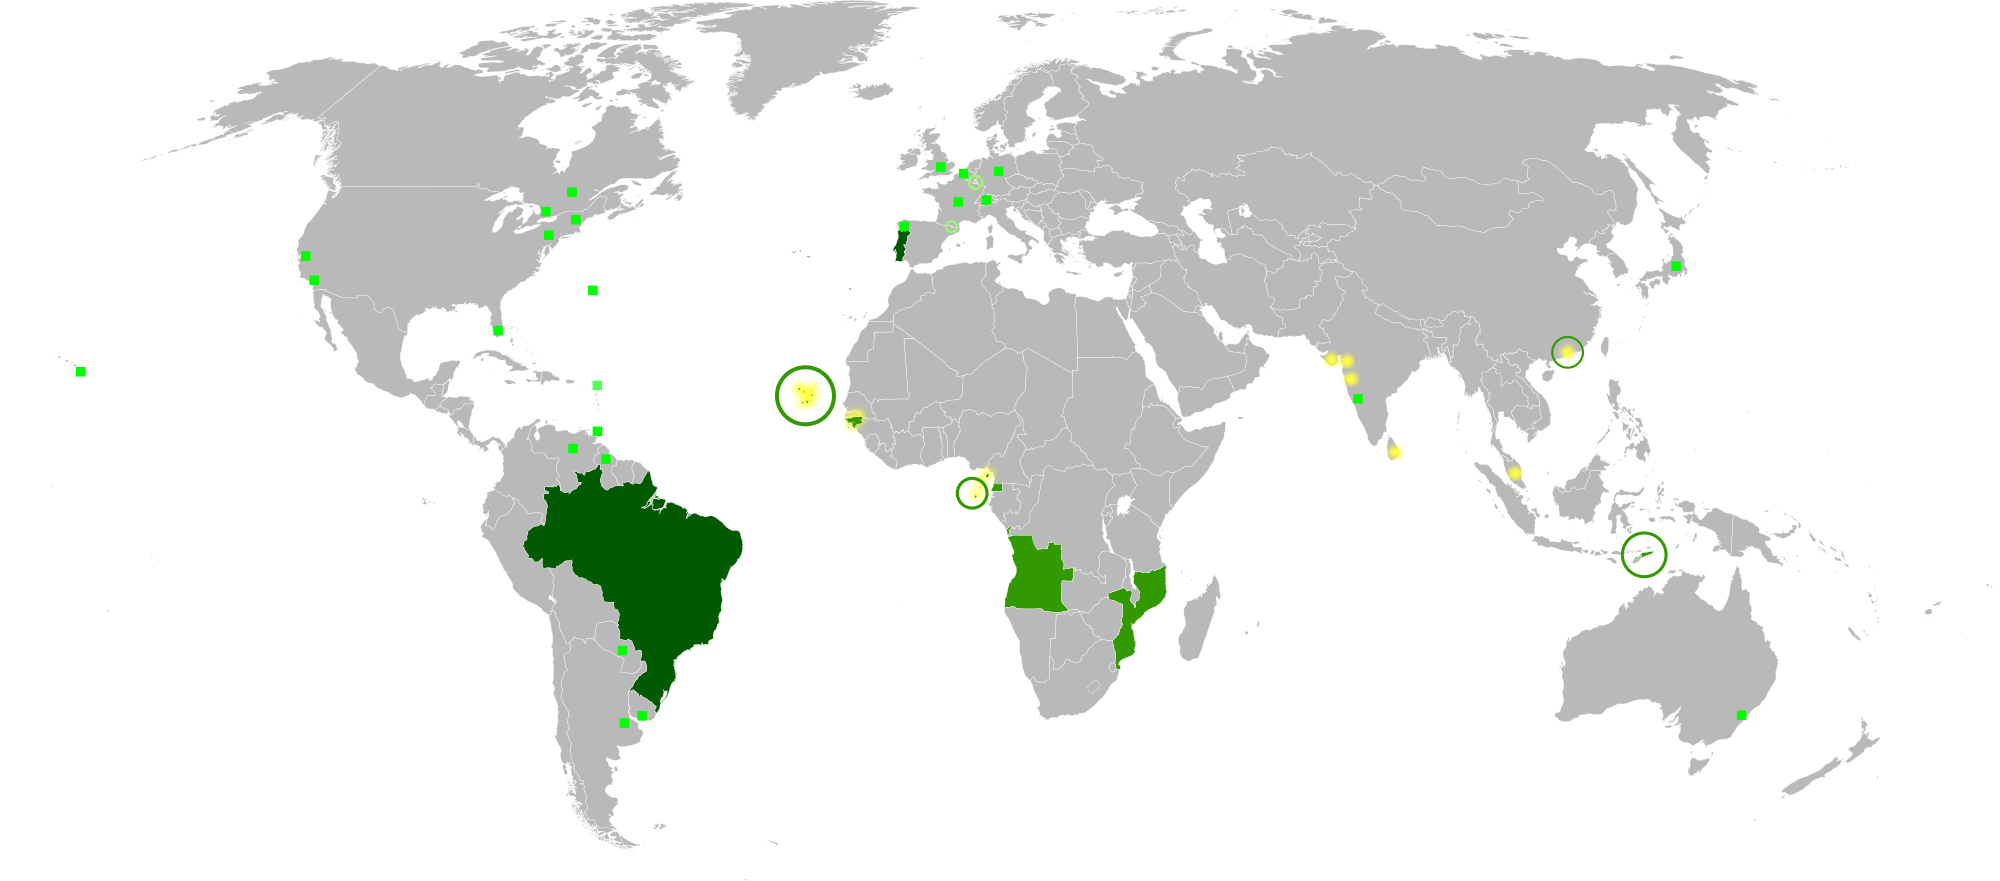 Map_of_the_portuguese_language_in_the_world.png